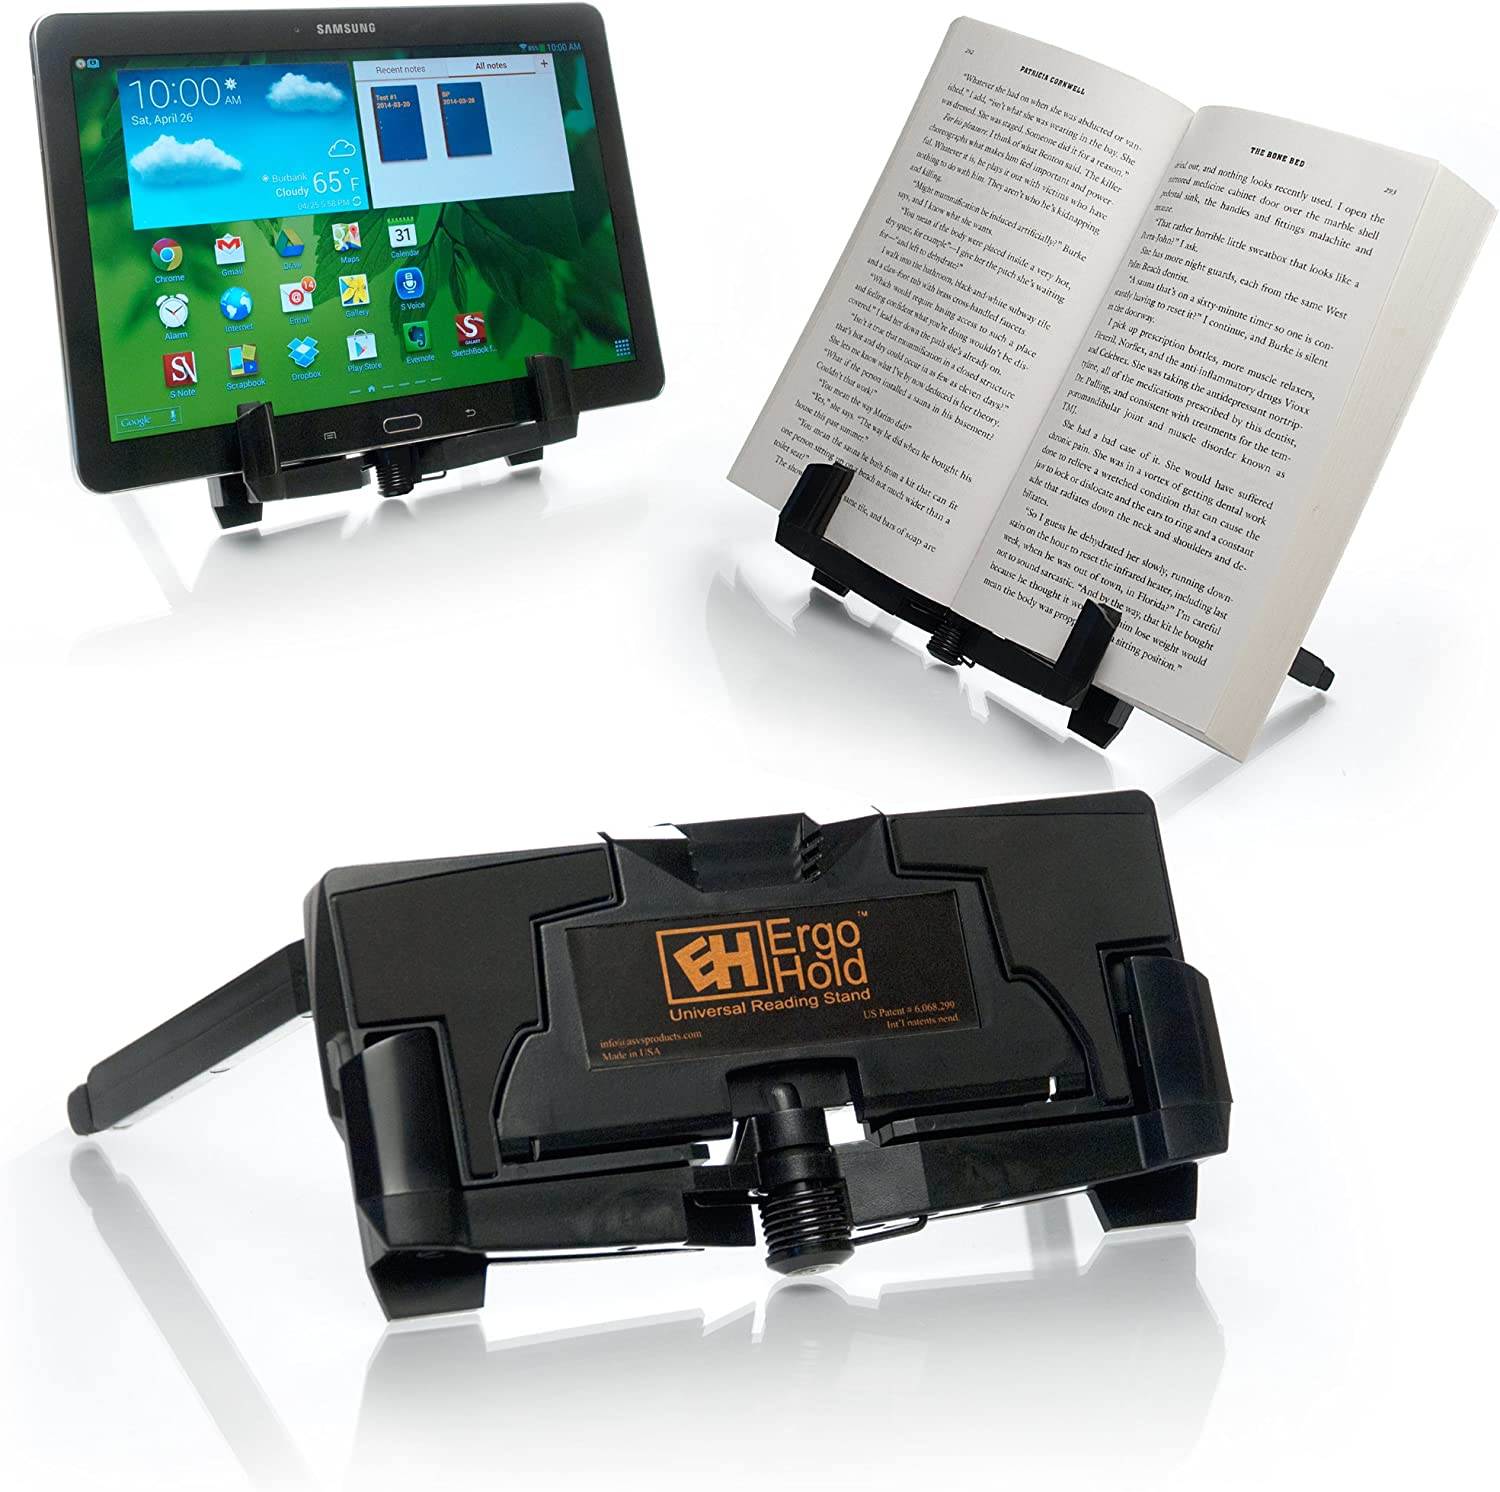 Ergohold Universal Stand Tablet Book Stand E Reader And Book Holder Read Watch Videos Hands Free Amazon Ca Computers Tablets